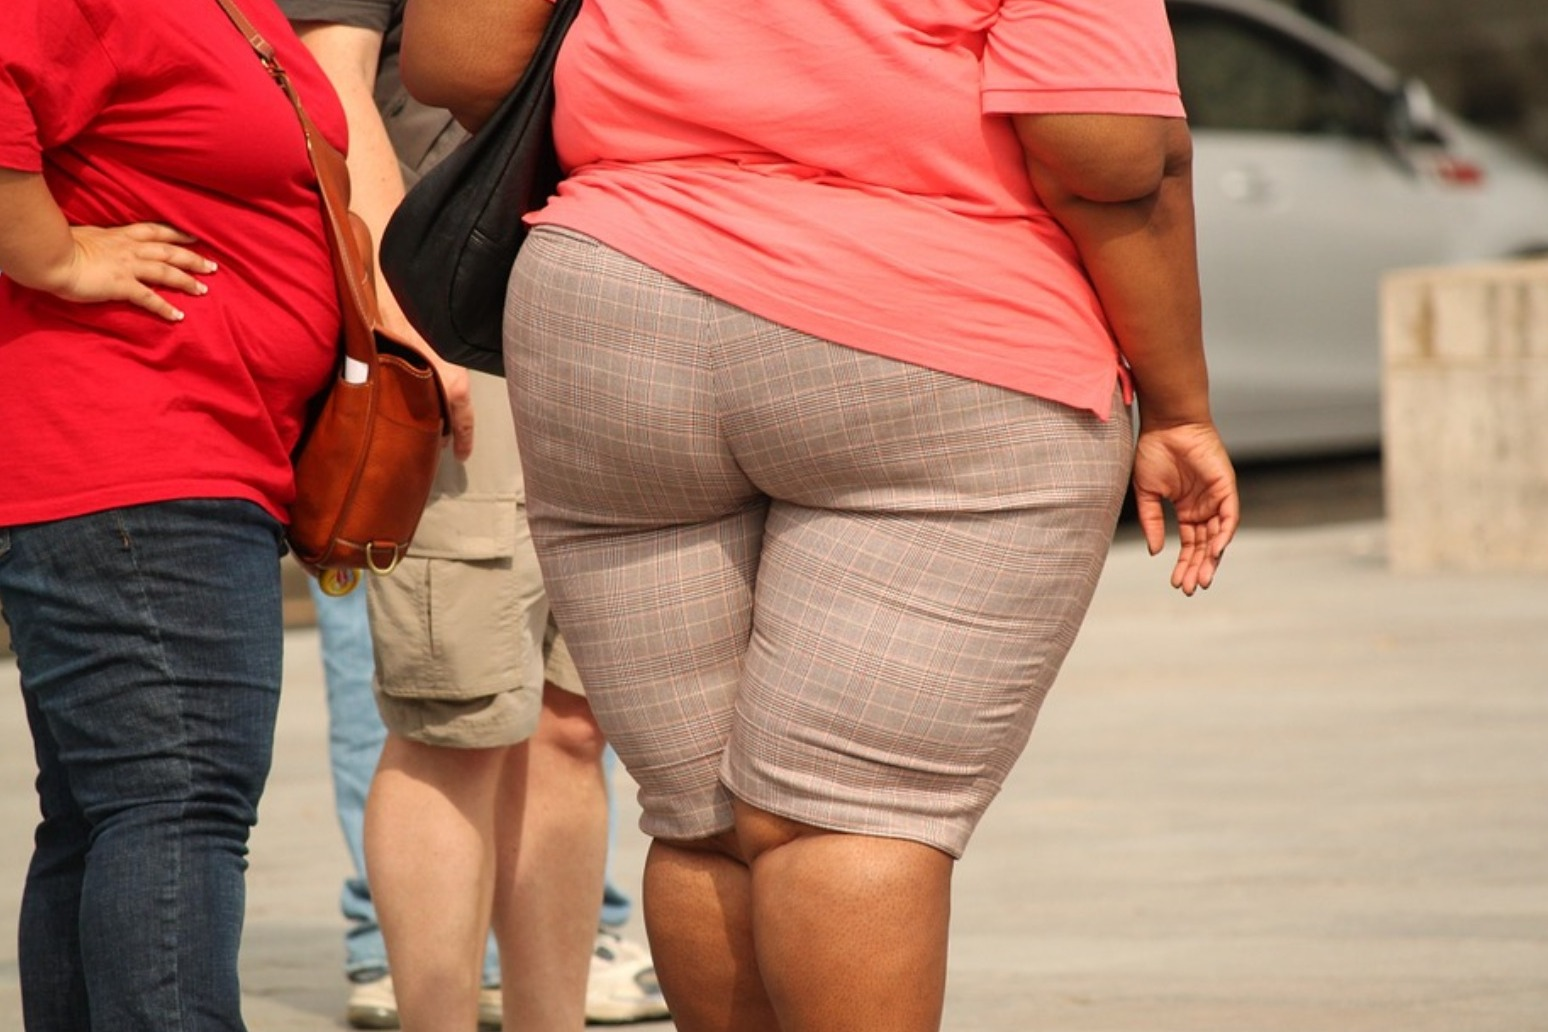 REPORT FINDS A FIFTH OF YOUNG PEOPLE BORN IN 2000 WERE OBESE BY AGE 14